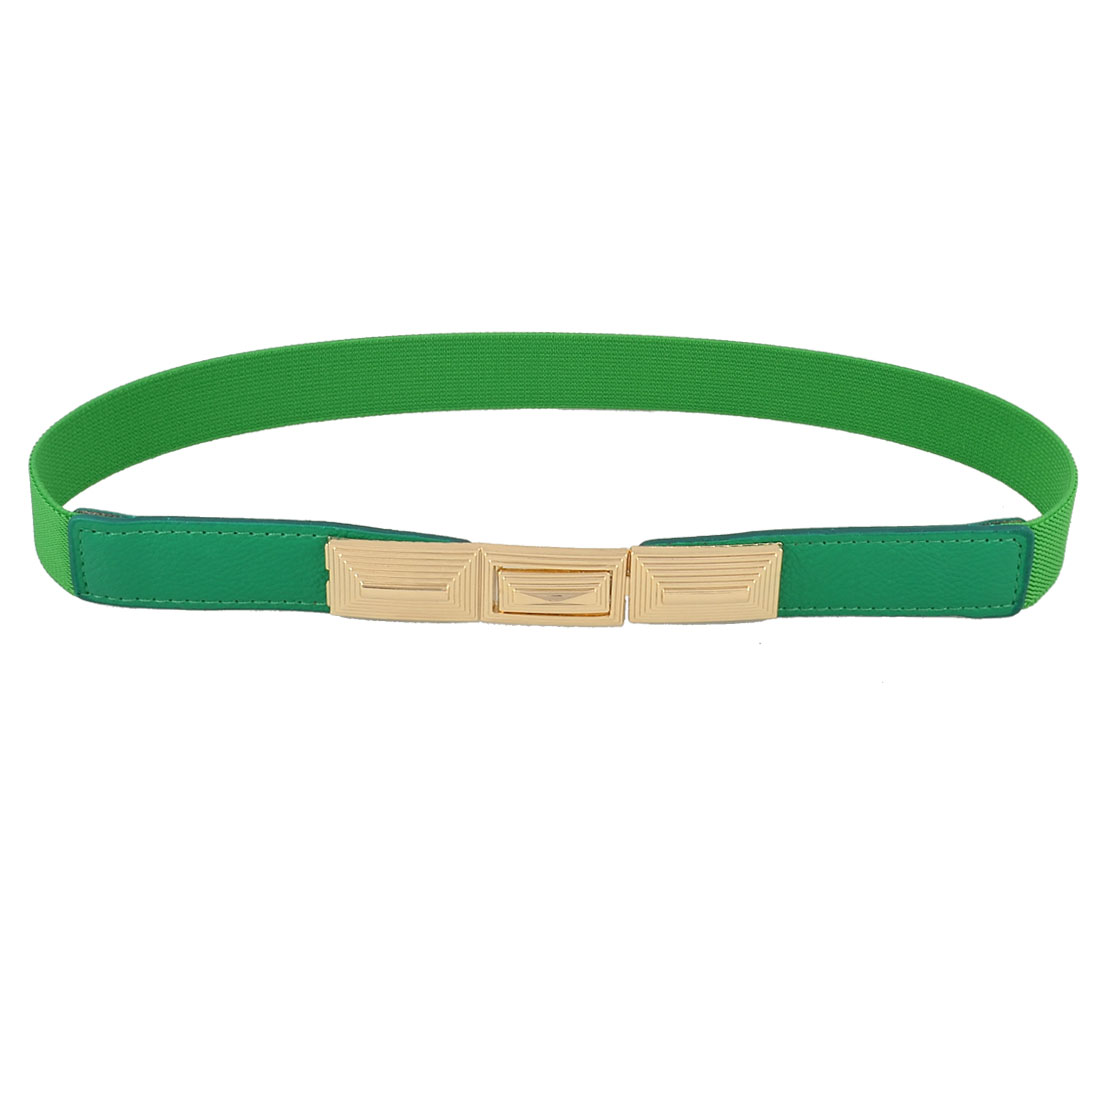 "Green Gold Tone Metal Buckle 1"" Width Elastic Thin Cinch Waist Belt for Woman"